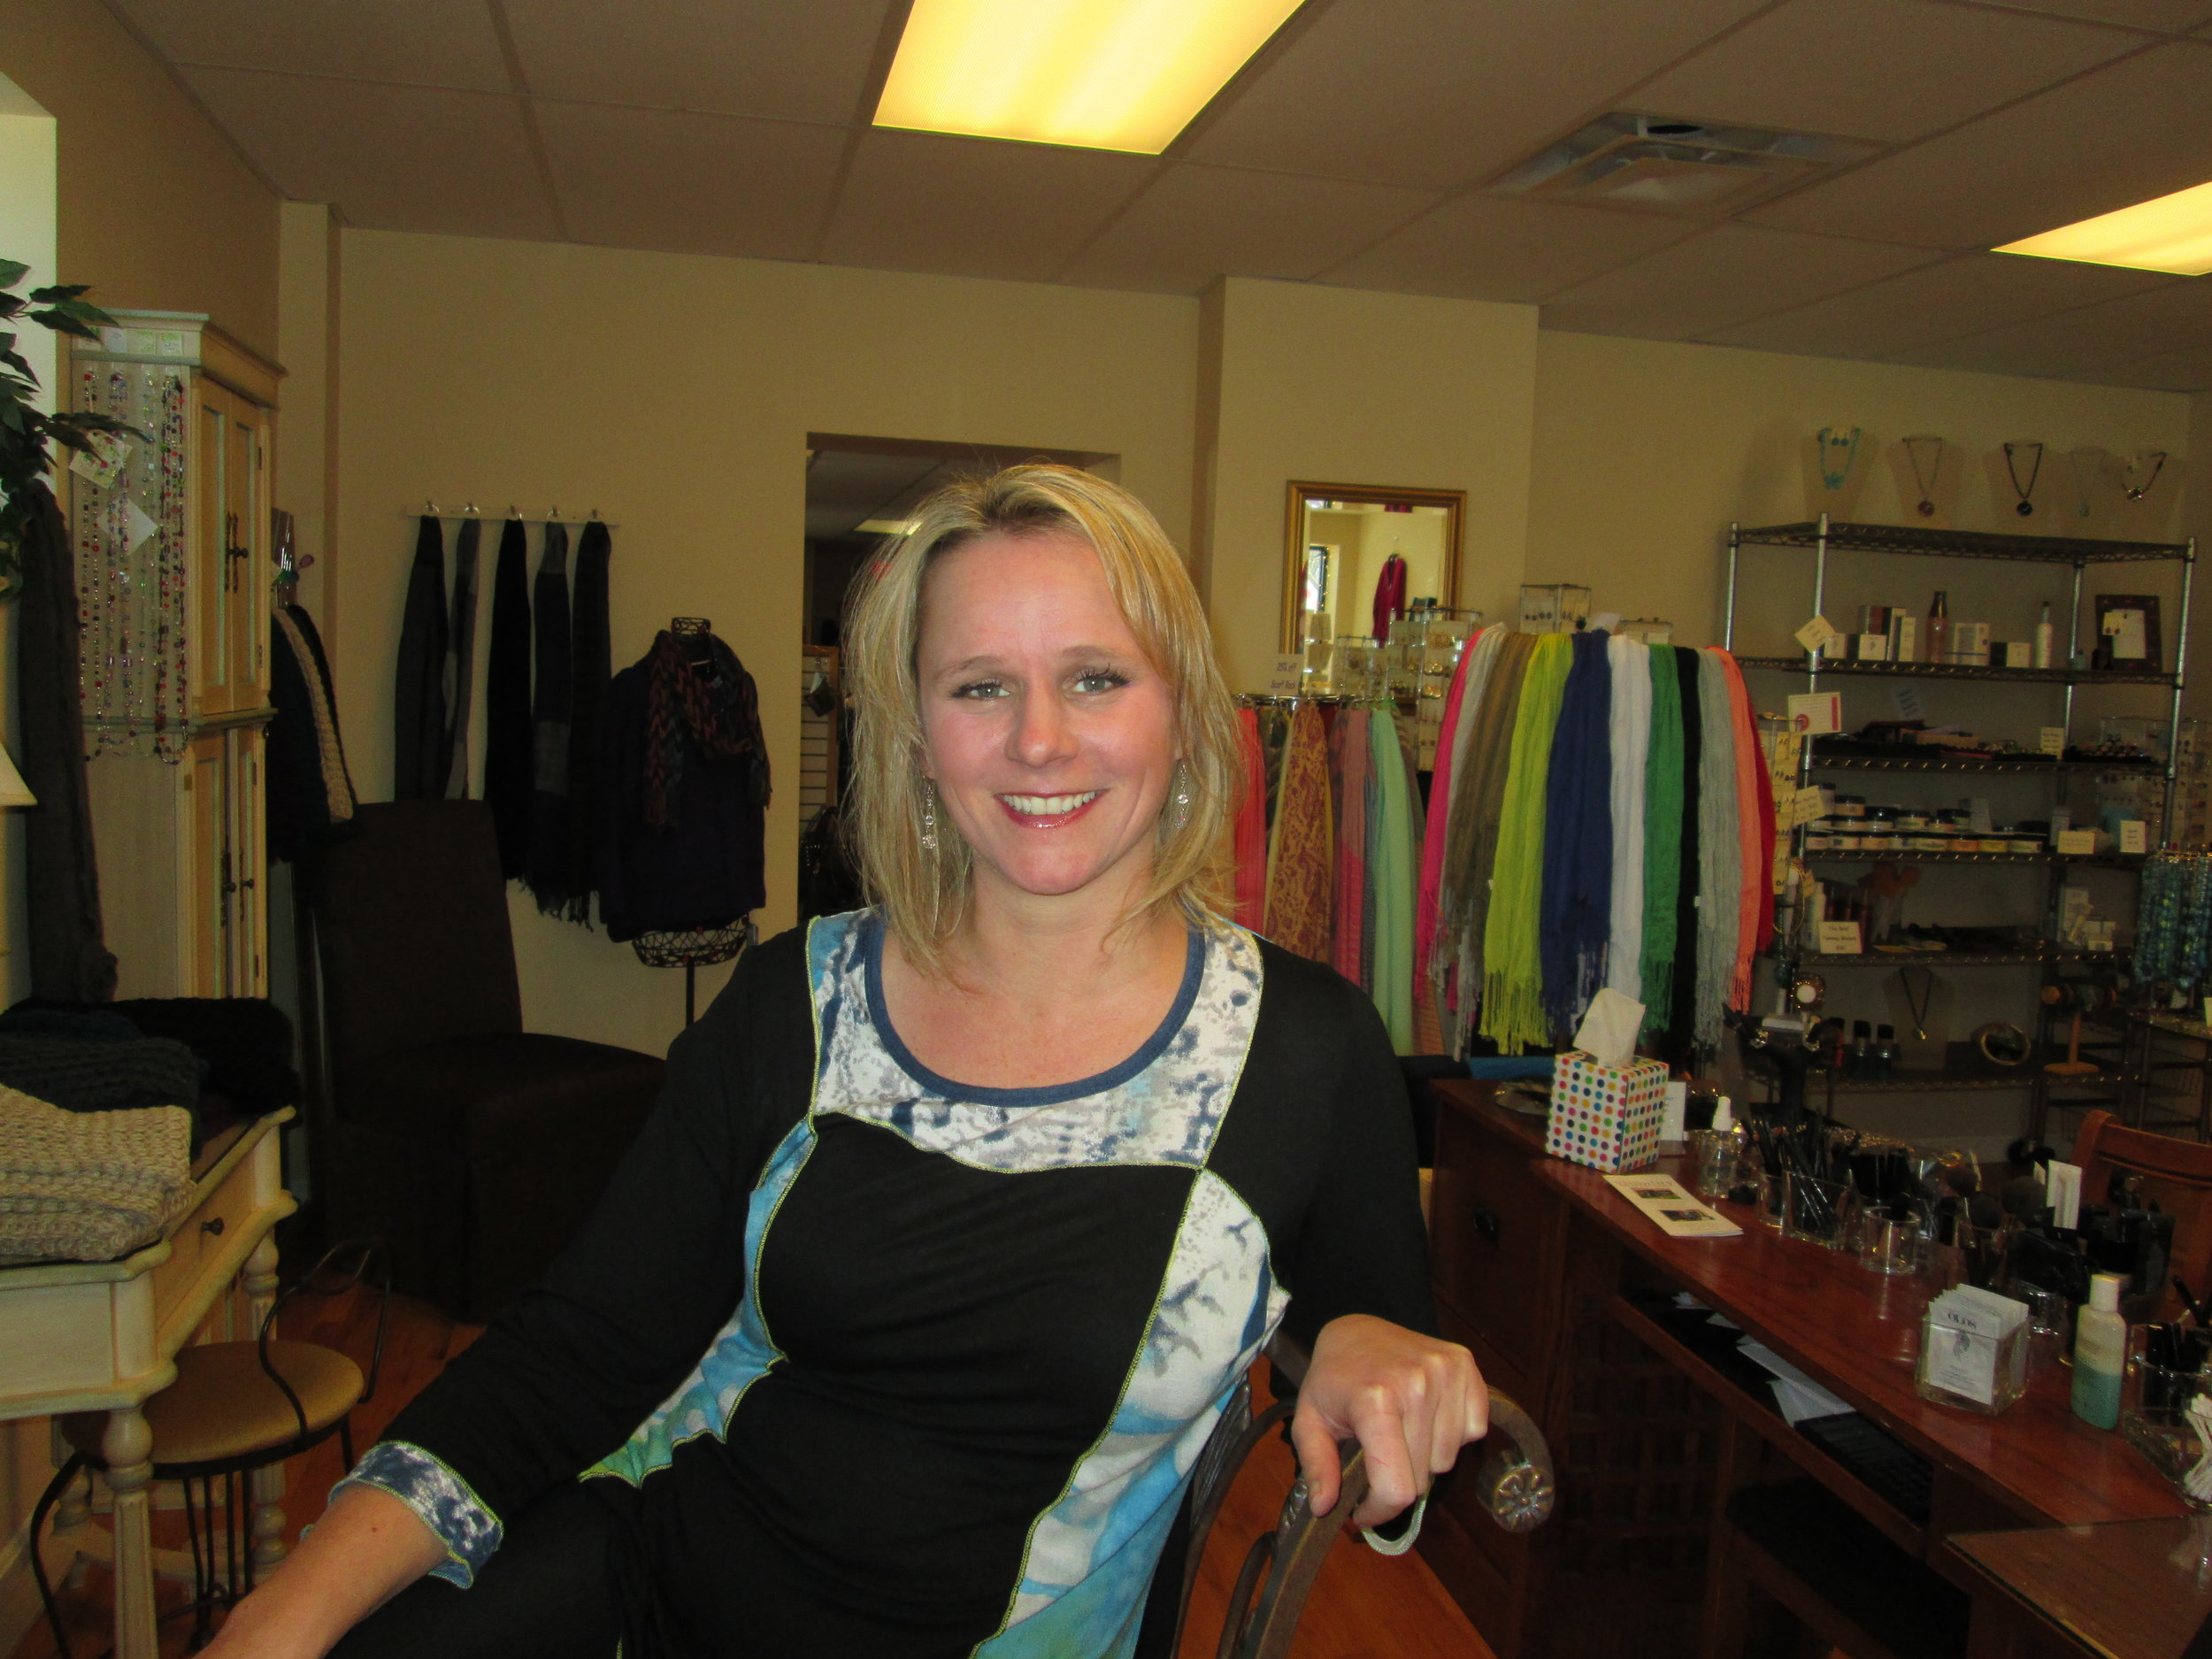 Kimberly Adams - Having 18 years' experience in the nail fashion industry to Visibility. She joined our company in 2014. Her work is technically perfect, and her attitude is always positive. She is friendly, efficient, and up-to-date in beautifying natural nails for manicures, pedicures, and gels. Kim's knowledge of color makes choosing the best polish easy.